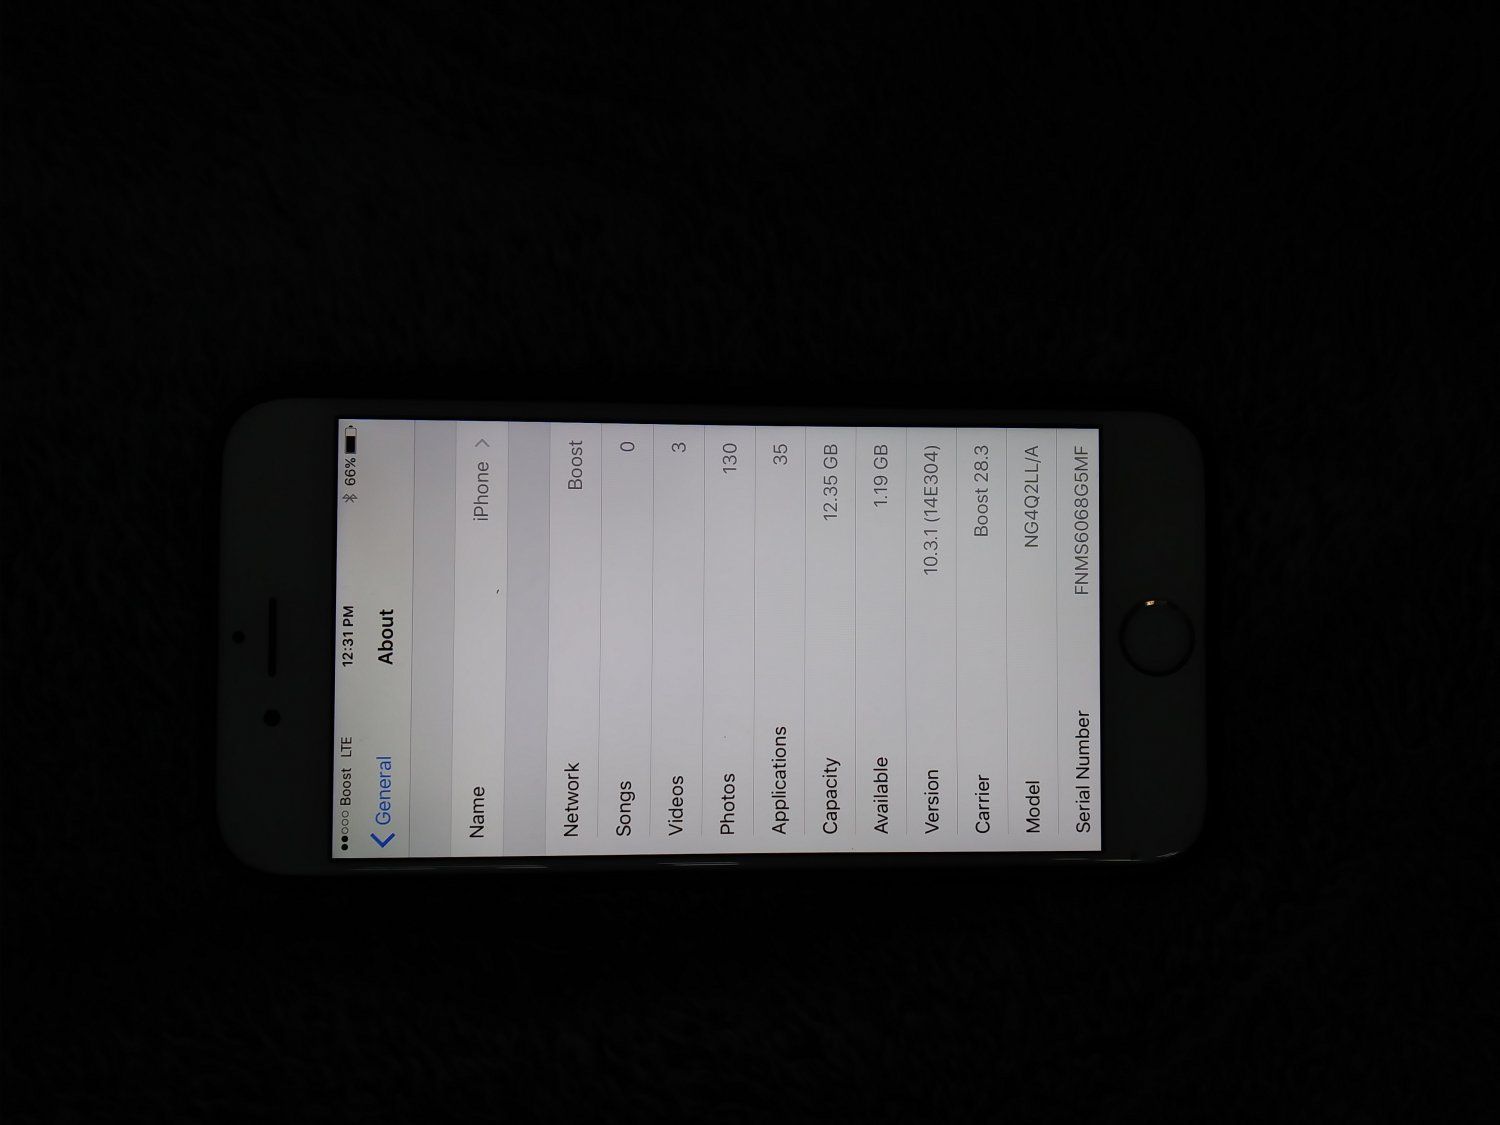 Iphone 6 gold 16gb (boost mobile)